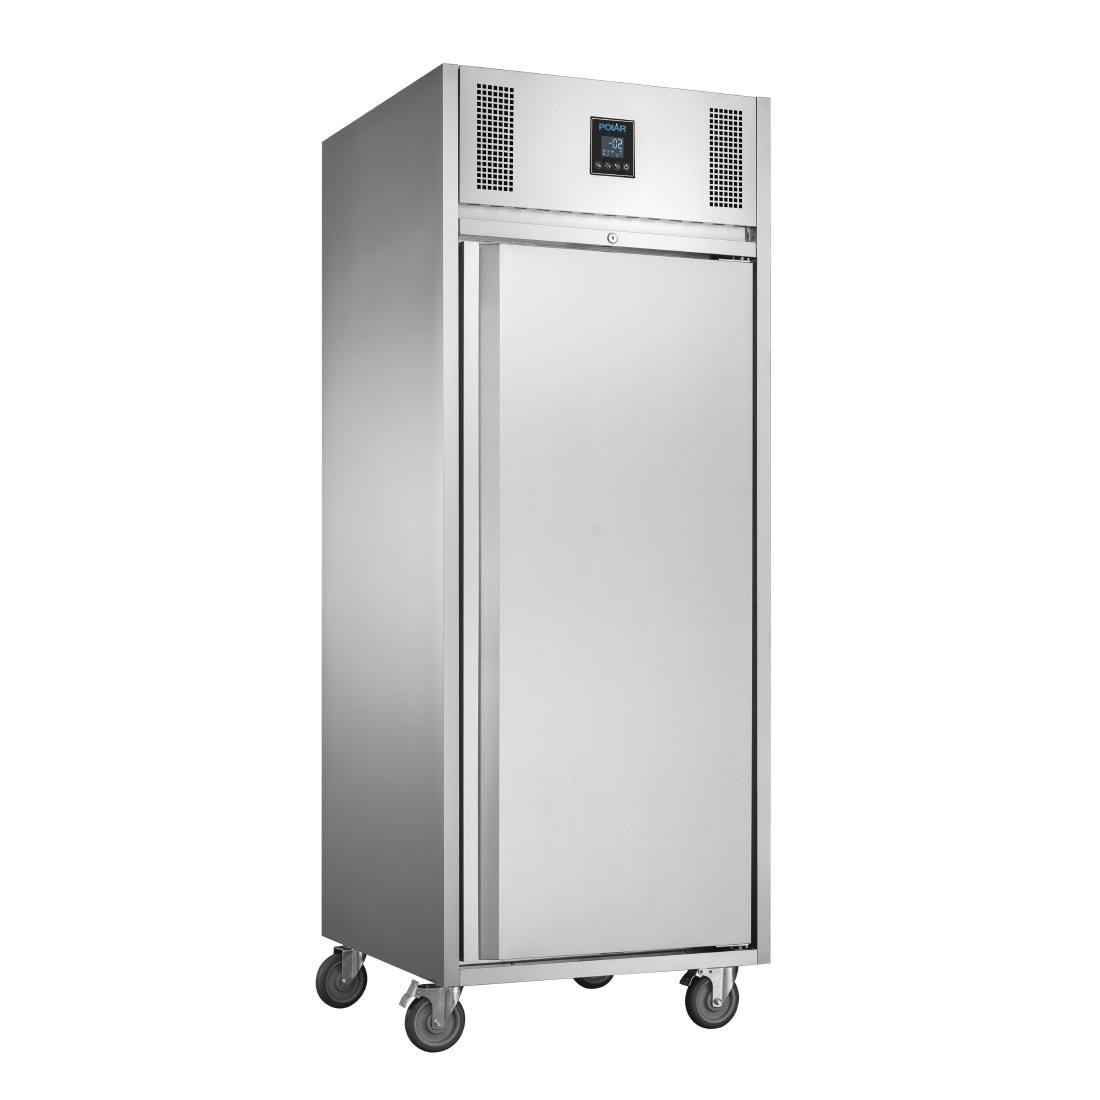 Polar UA001 U-Series Premium Single Door Fridge